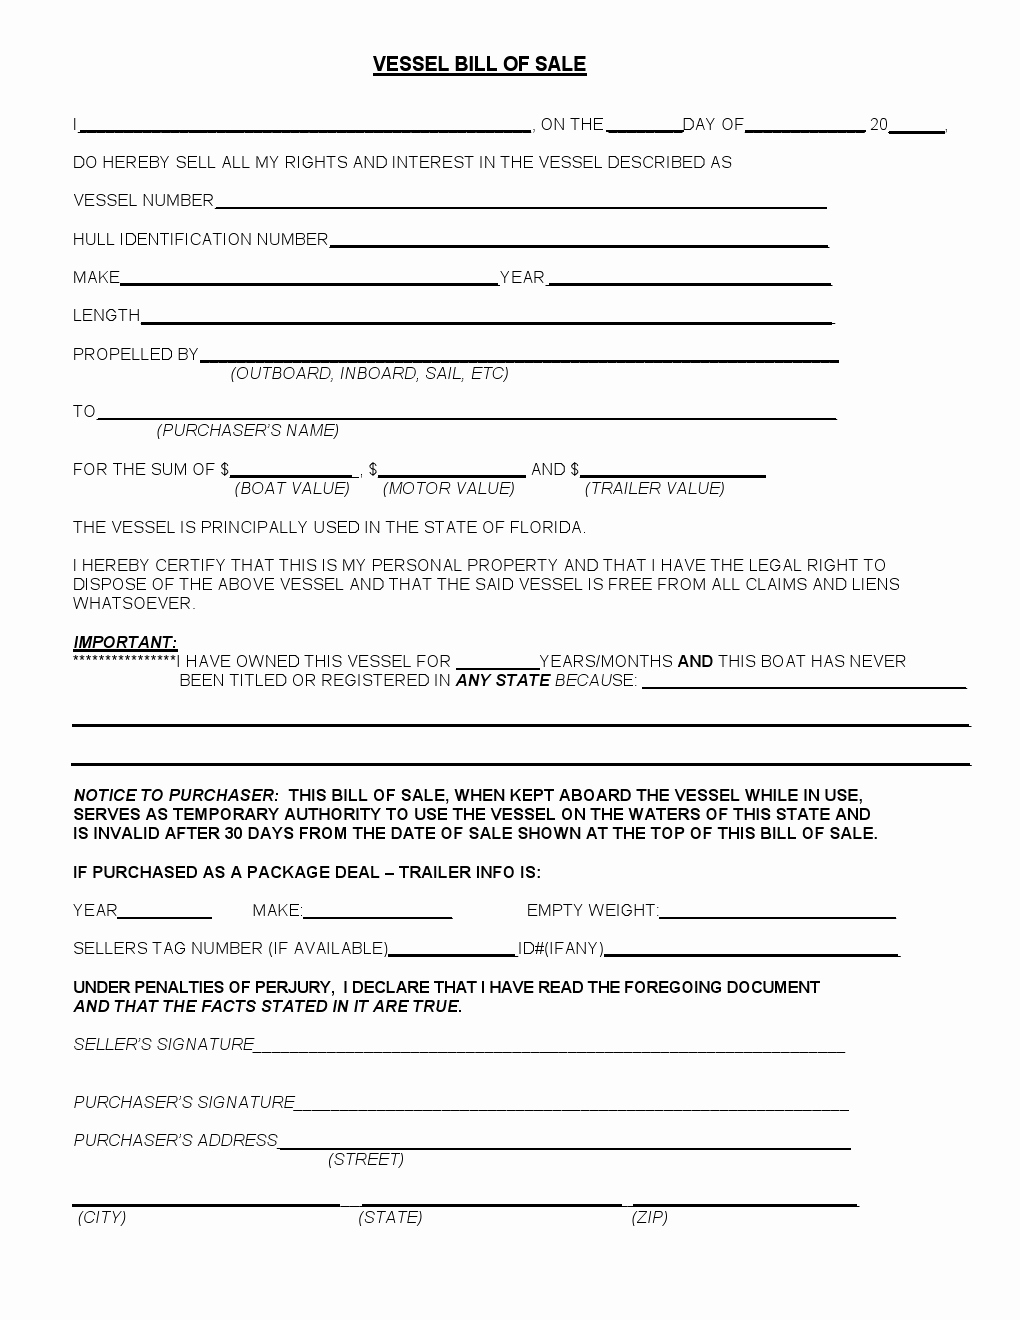 Florida Bill Of Sale for Trailer Lovely Free Florida Vessel Bill Of Sale form Download Pdf